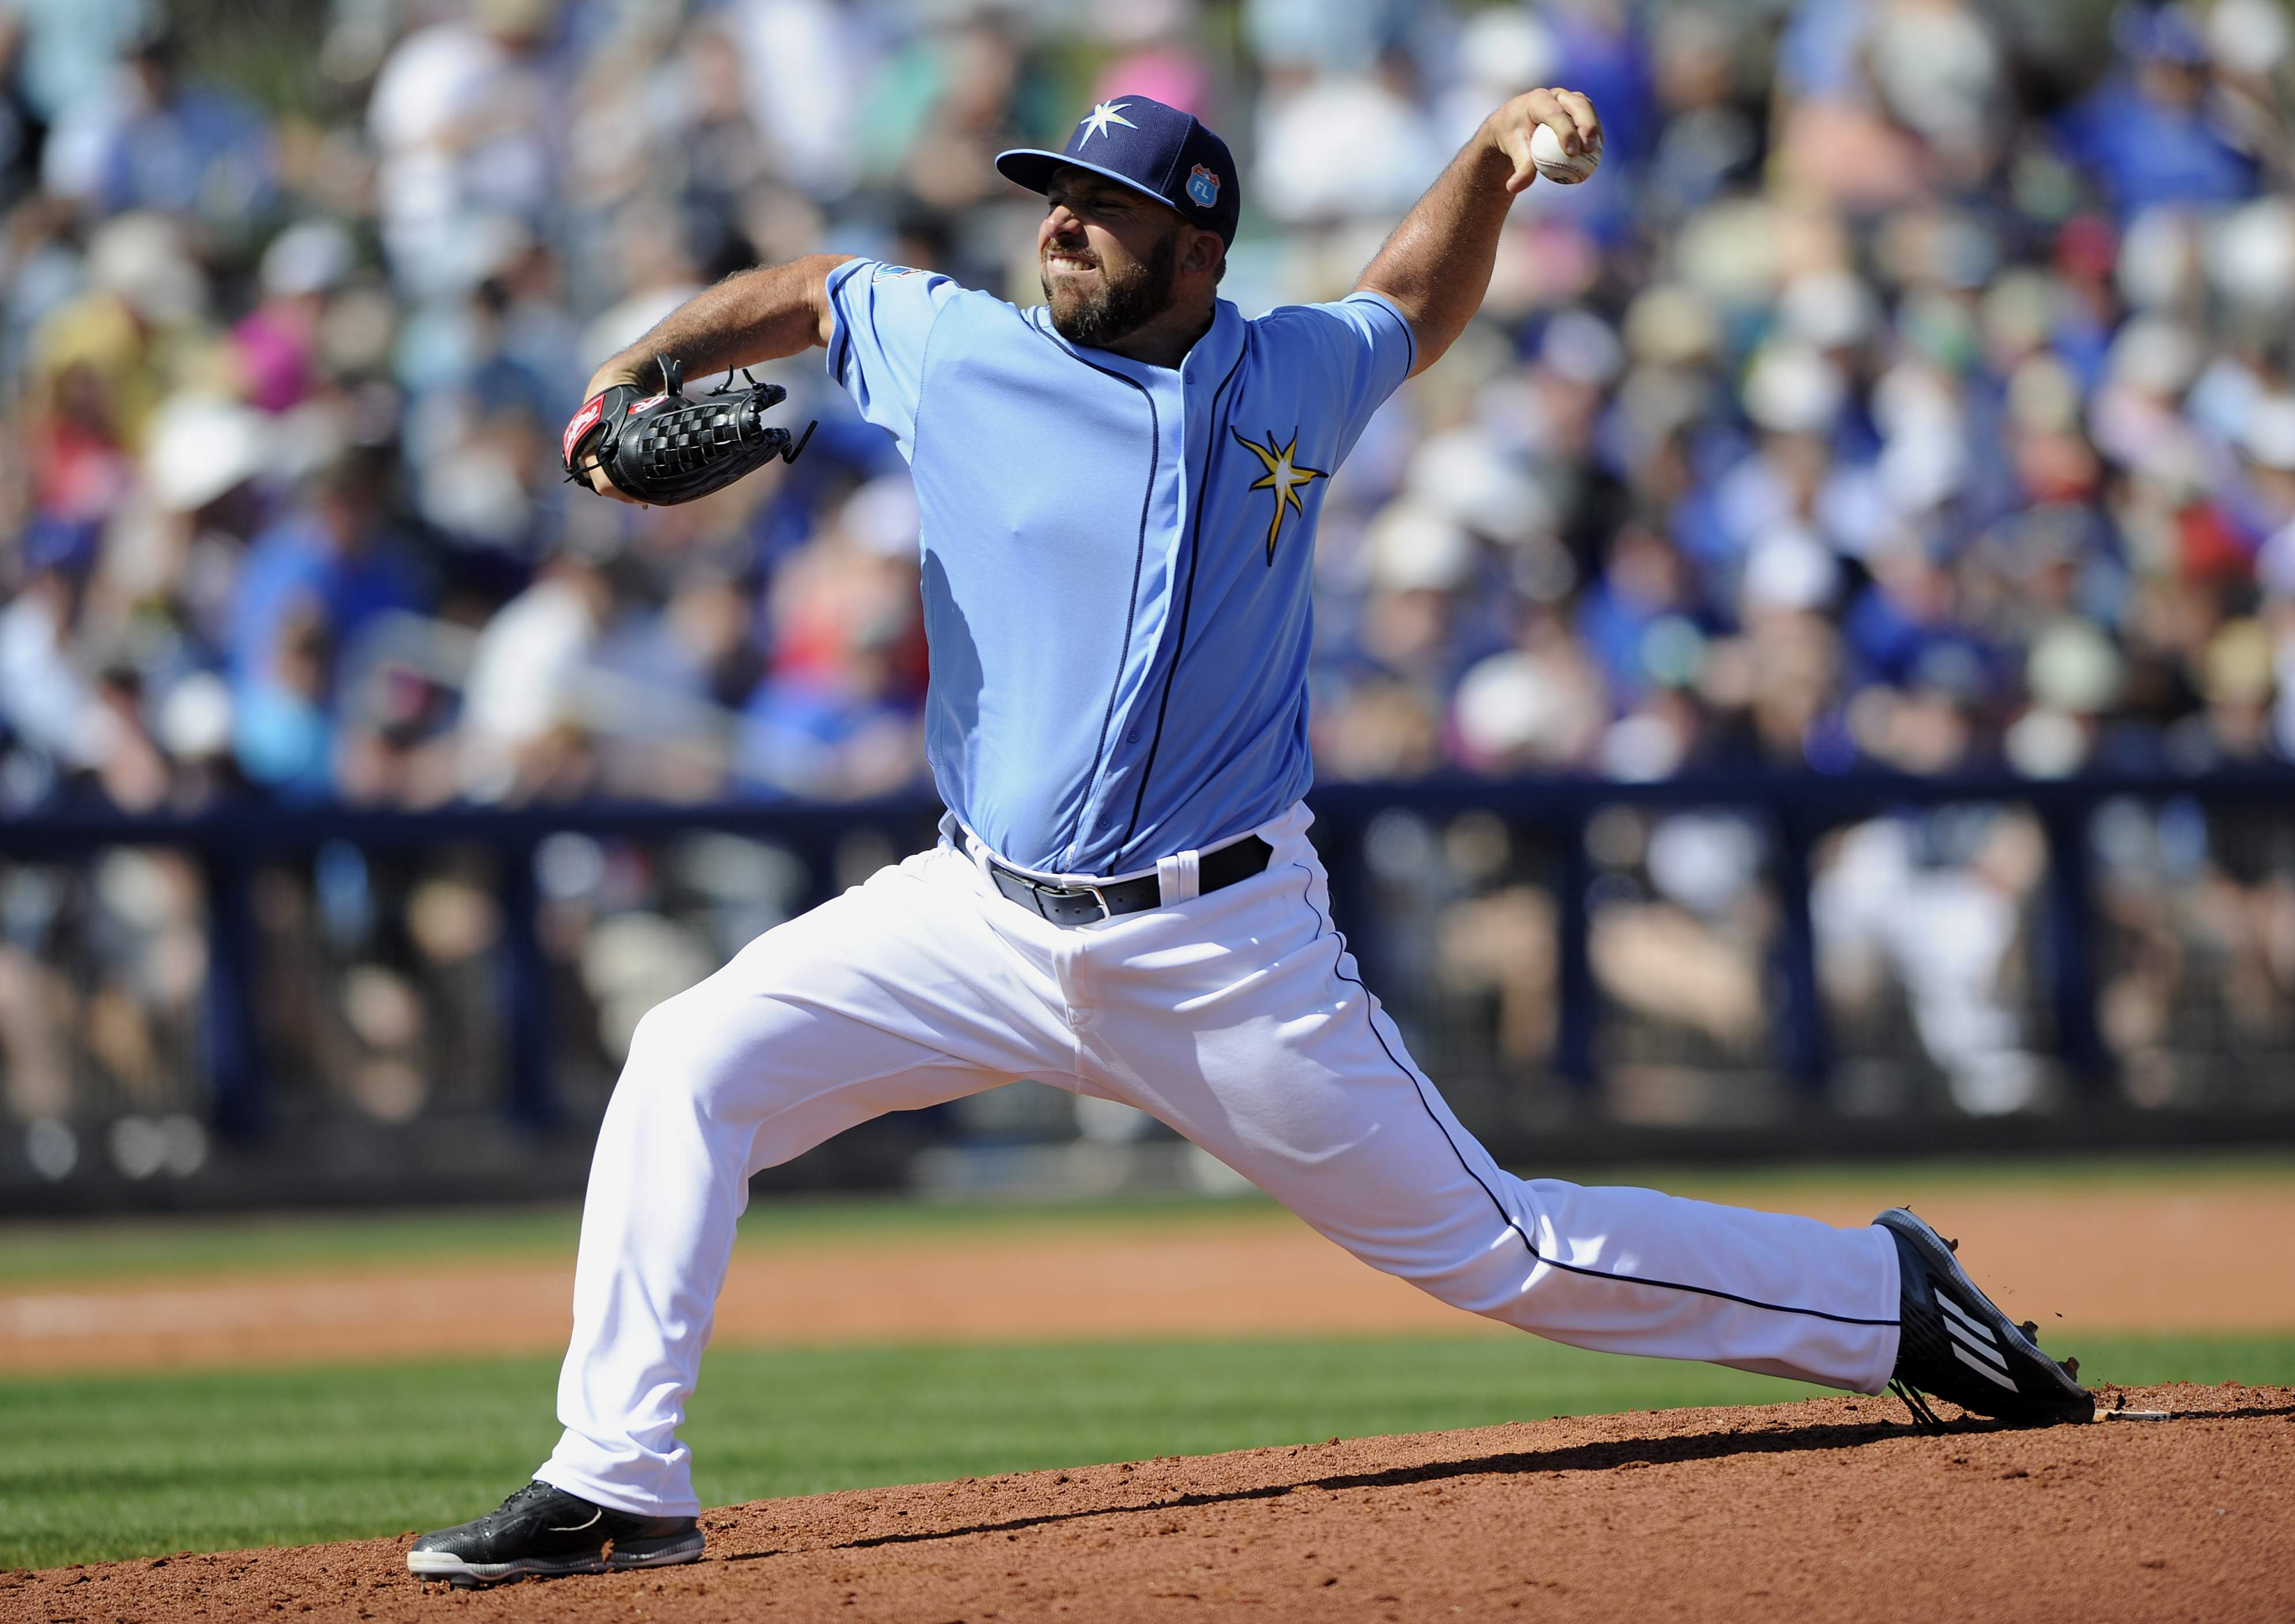 Dana Eveland pitching for the Rays in Spring Training 2016. (Photo Credit: TBO.com)